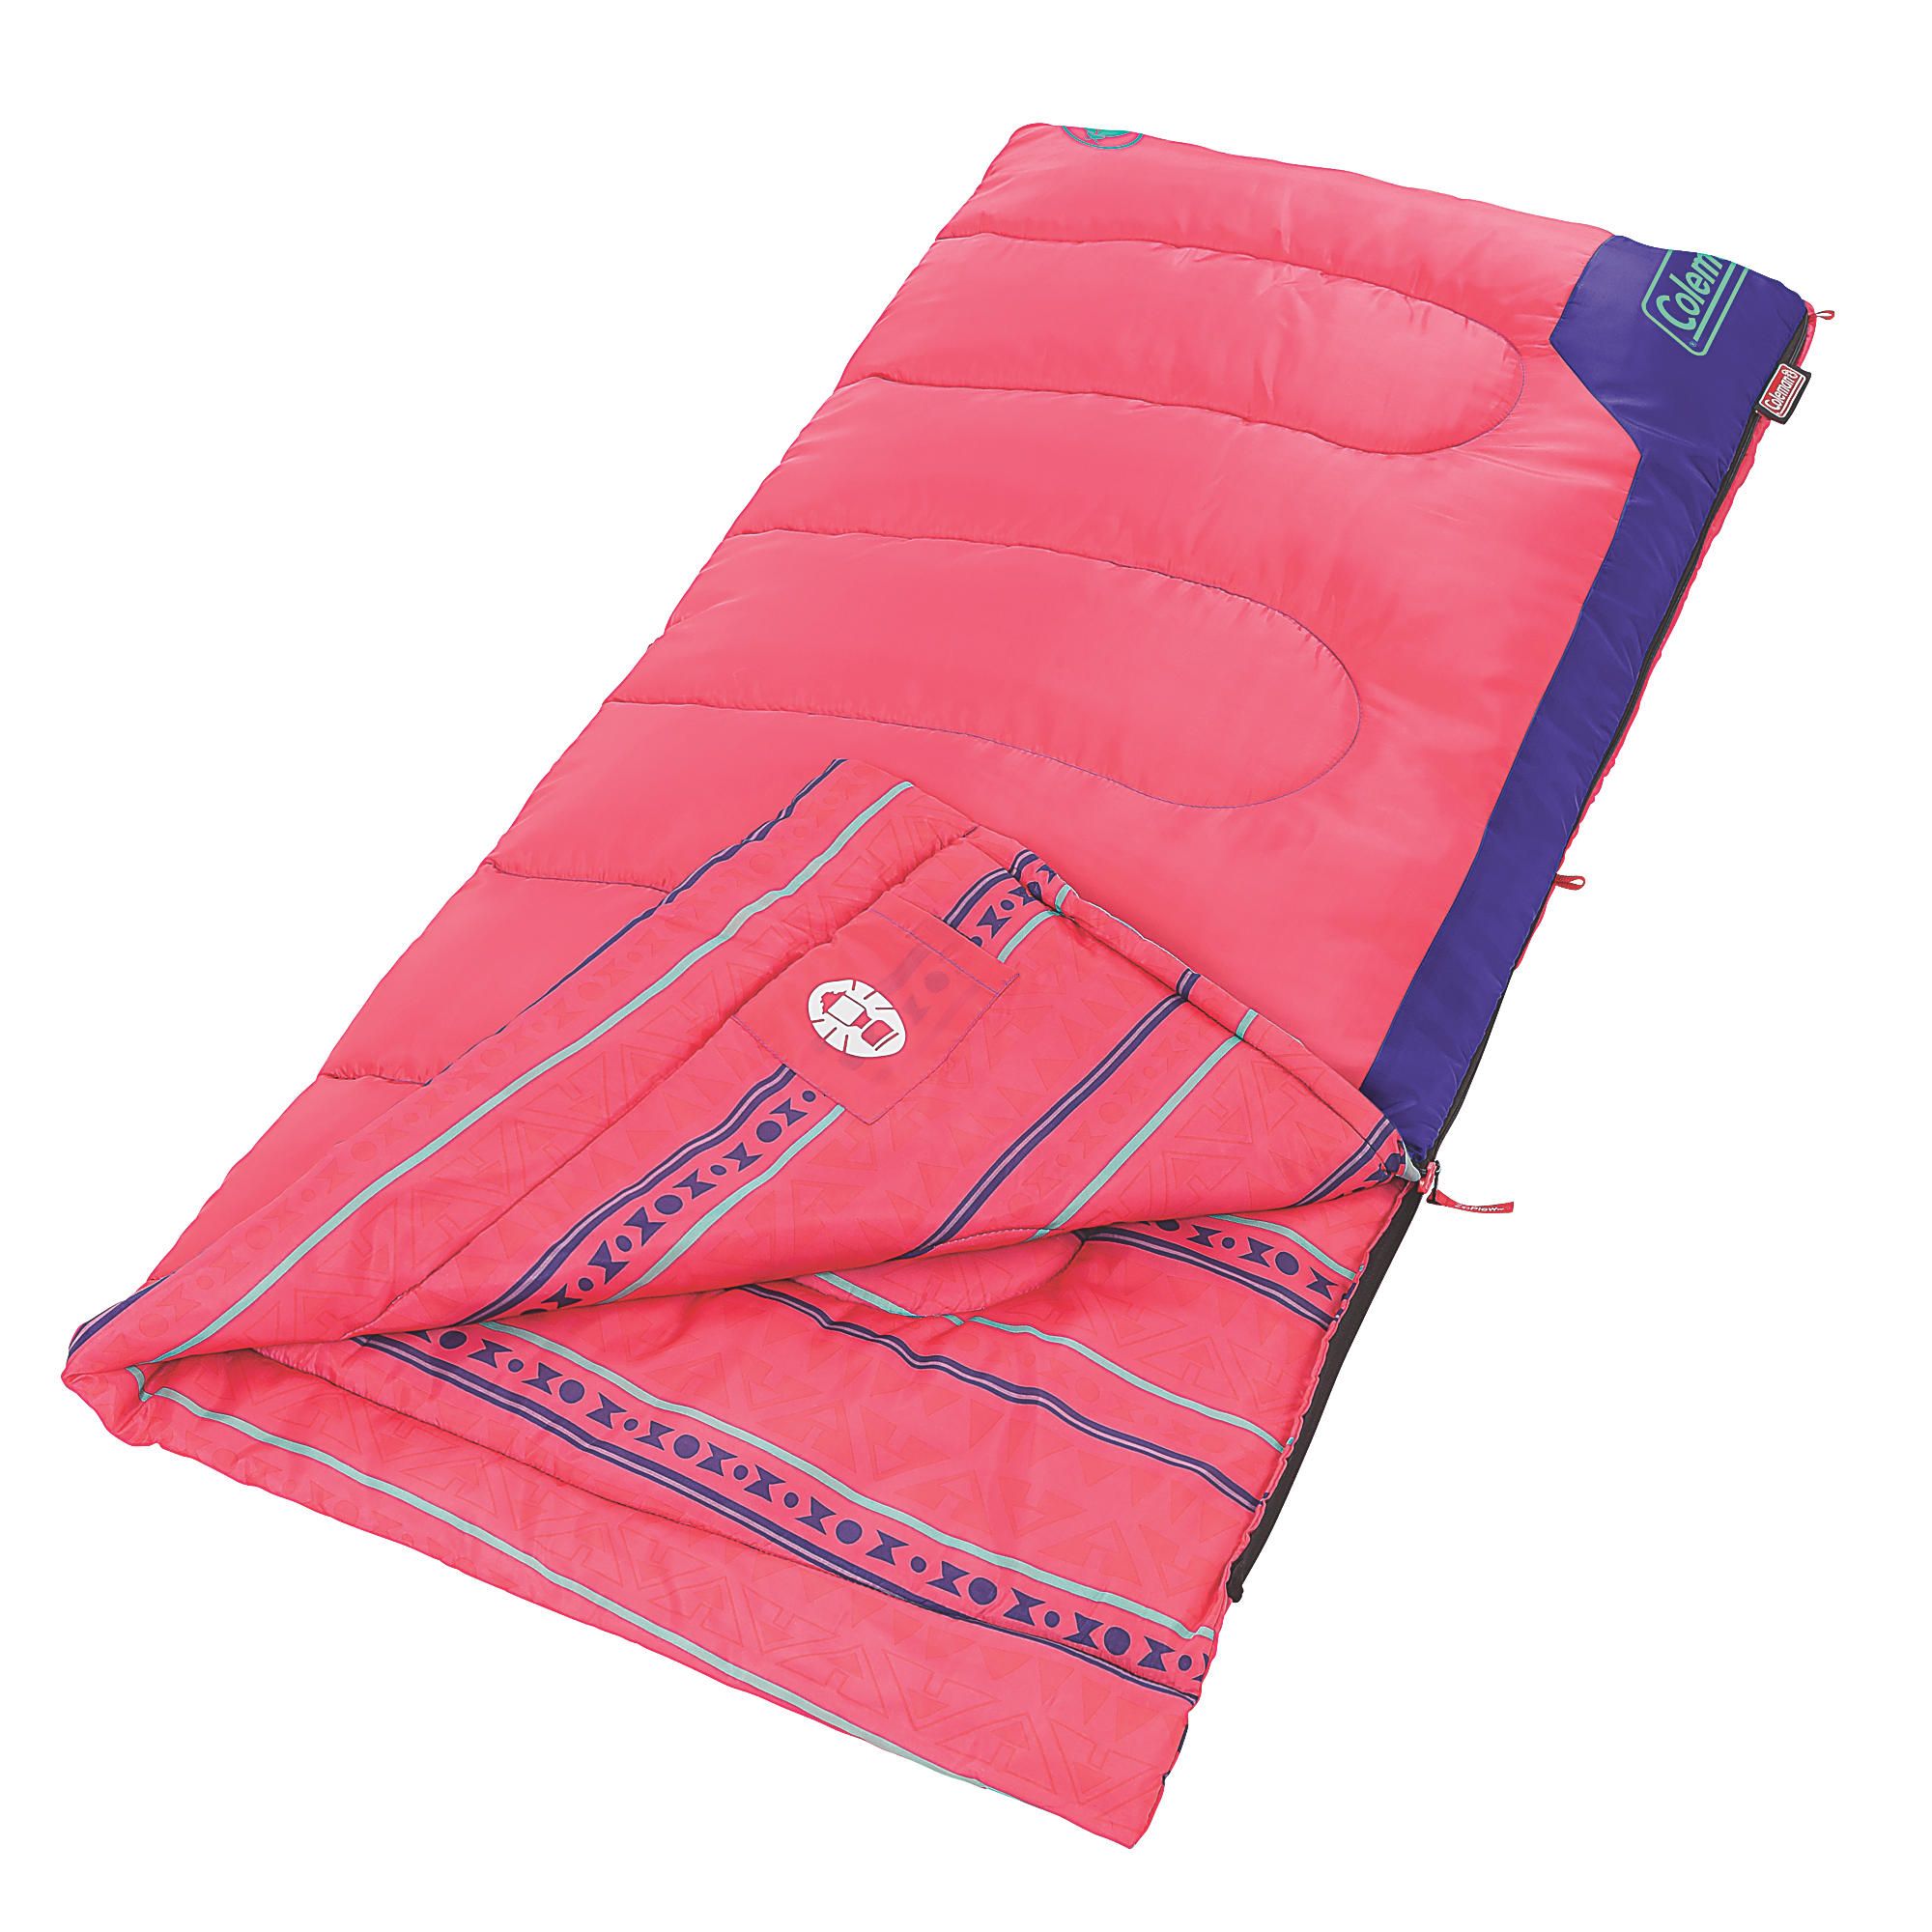 Youth Sleeping Bag